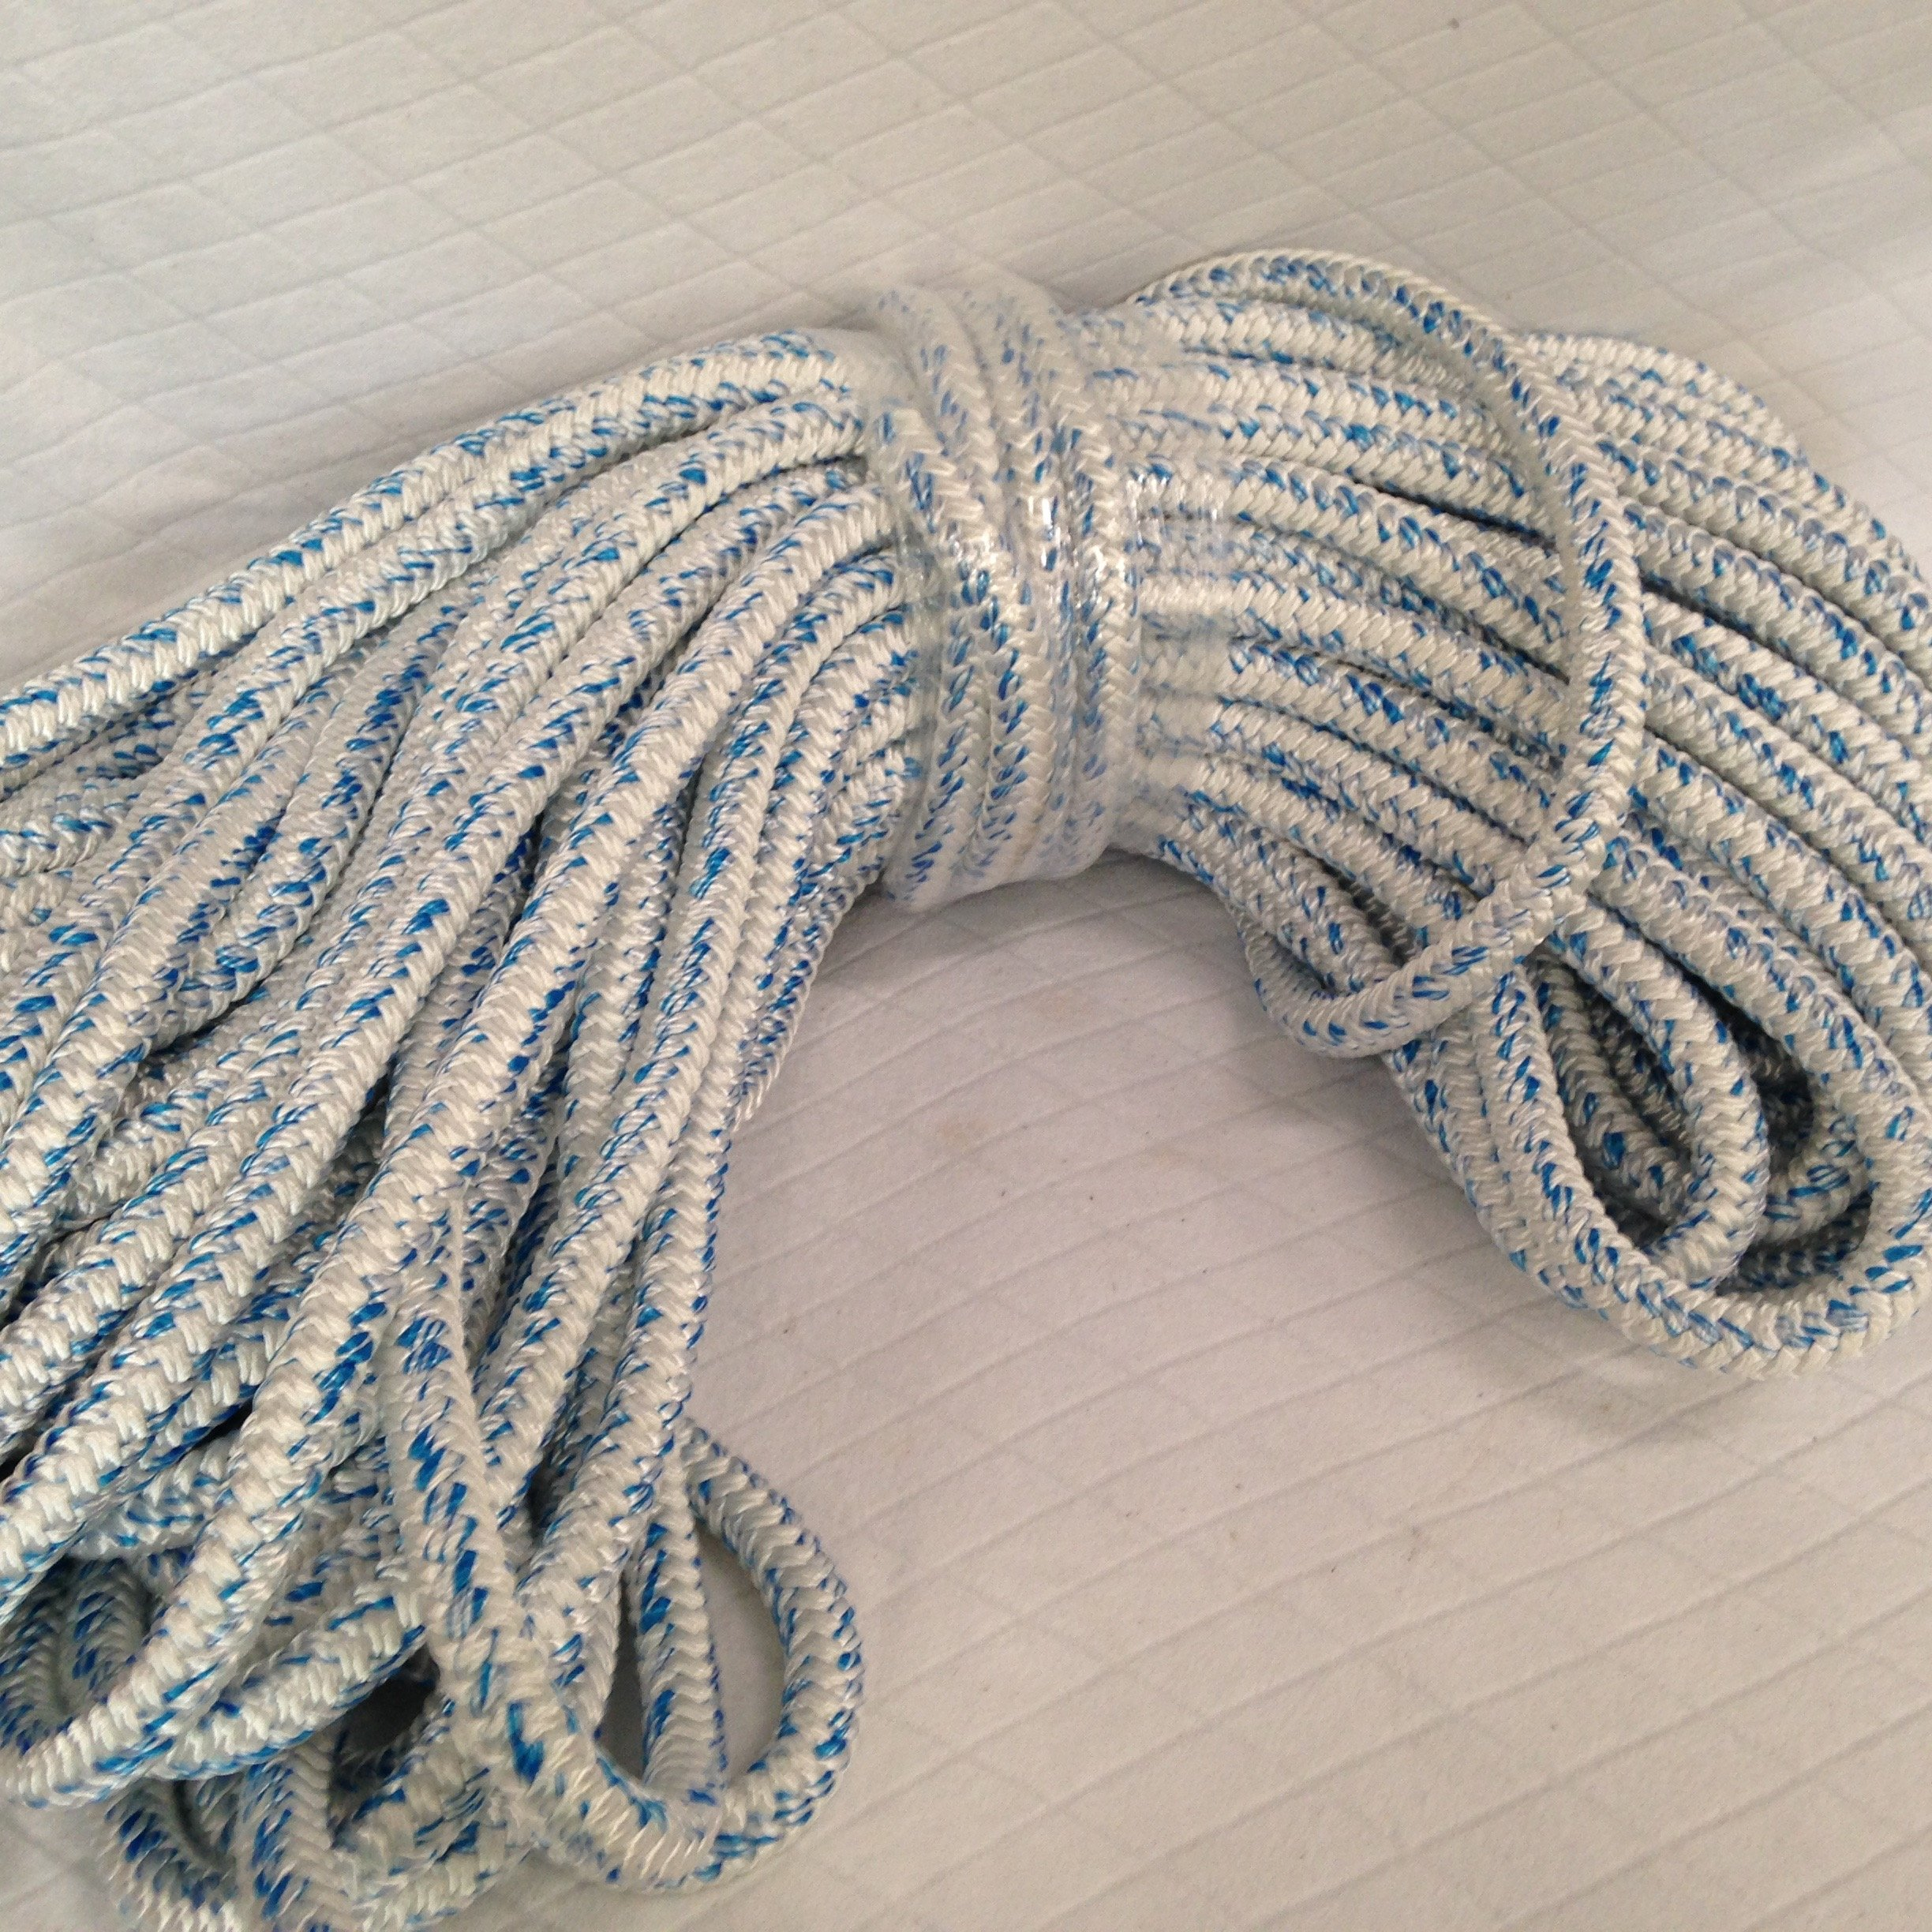 3/4'' By 200 Feet 12 Carrier, 24 Strand Polyester Arborist Bull Rope, White/Blue by Blue Ox Rope (Image #1)